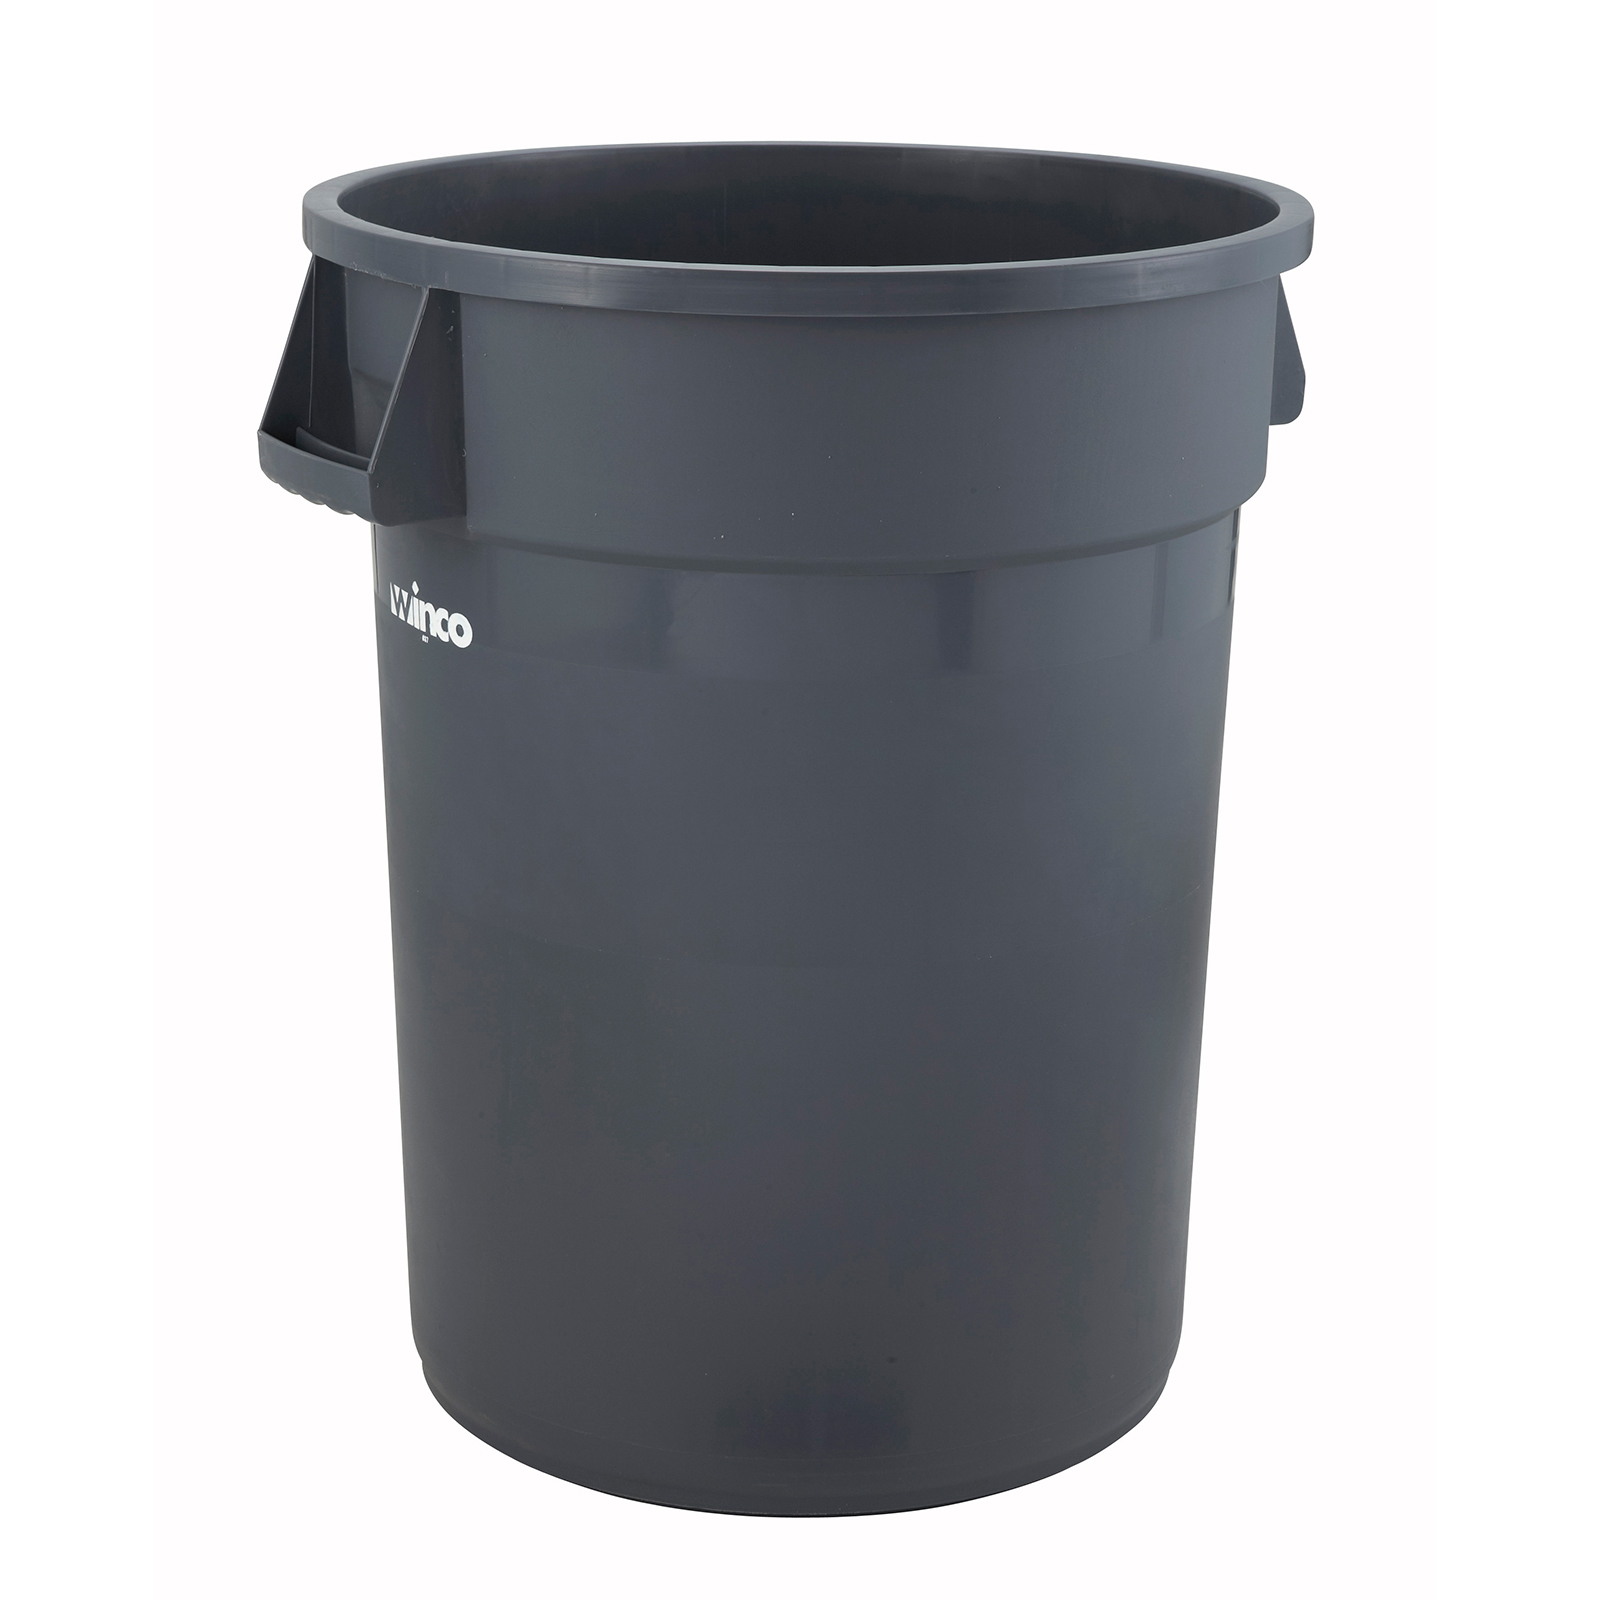 Winco PTC-44G trash can / container, commercial